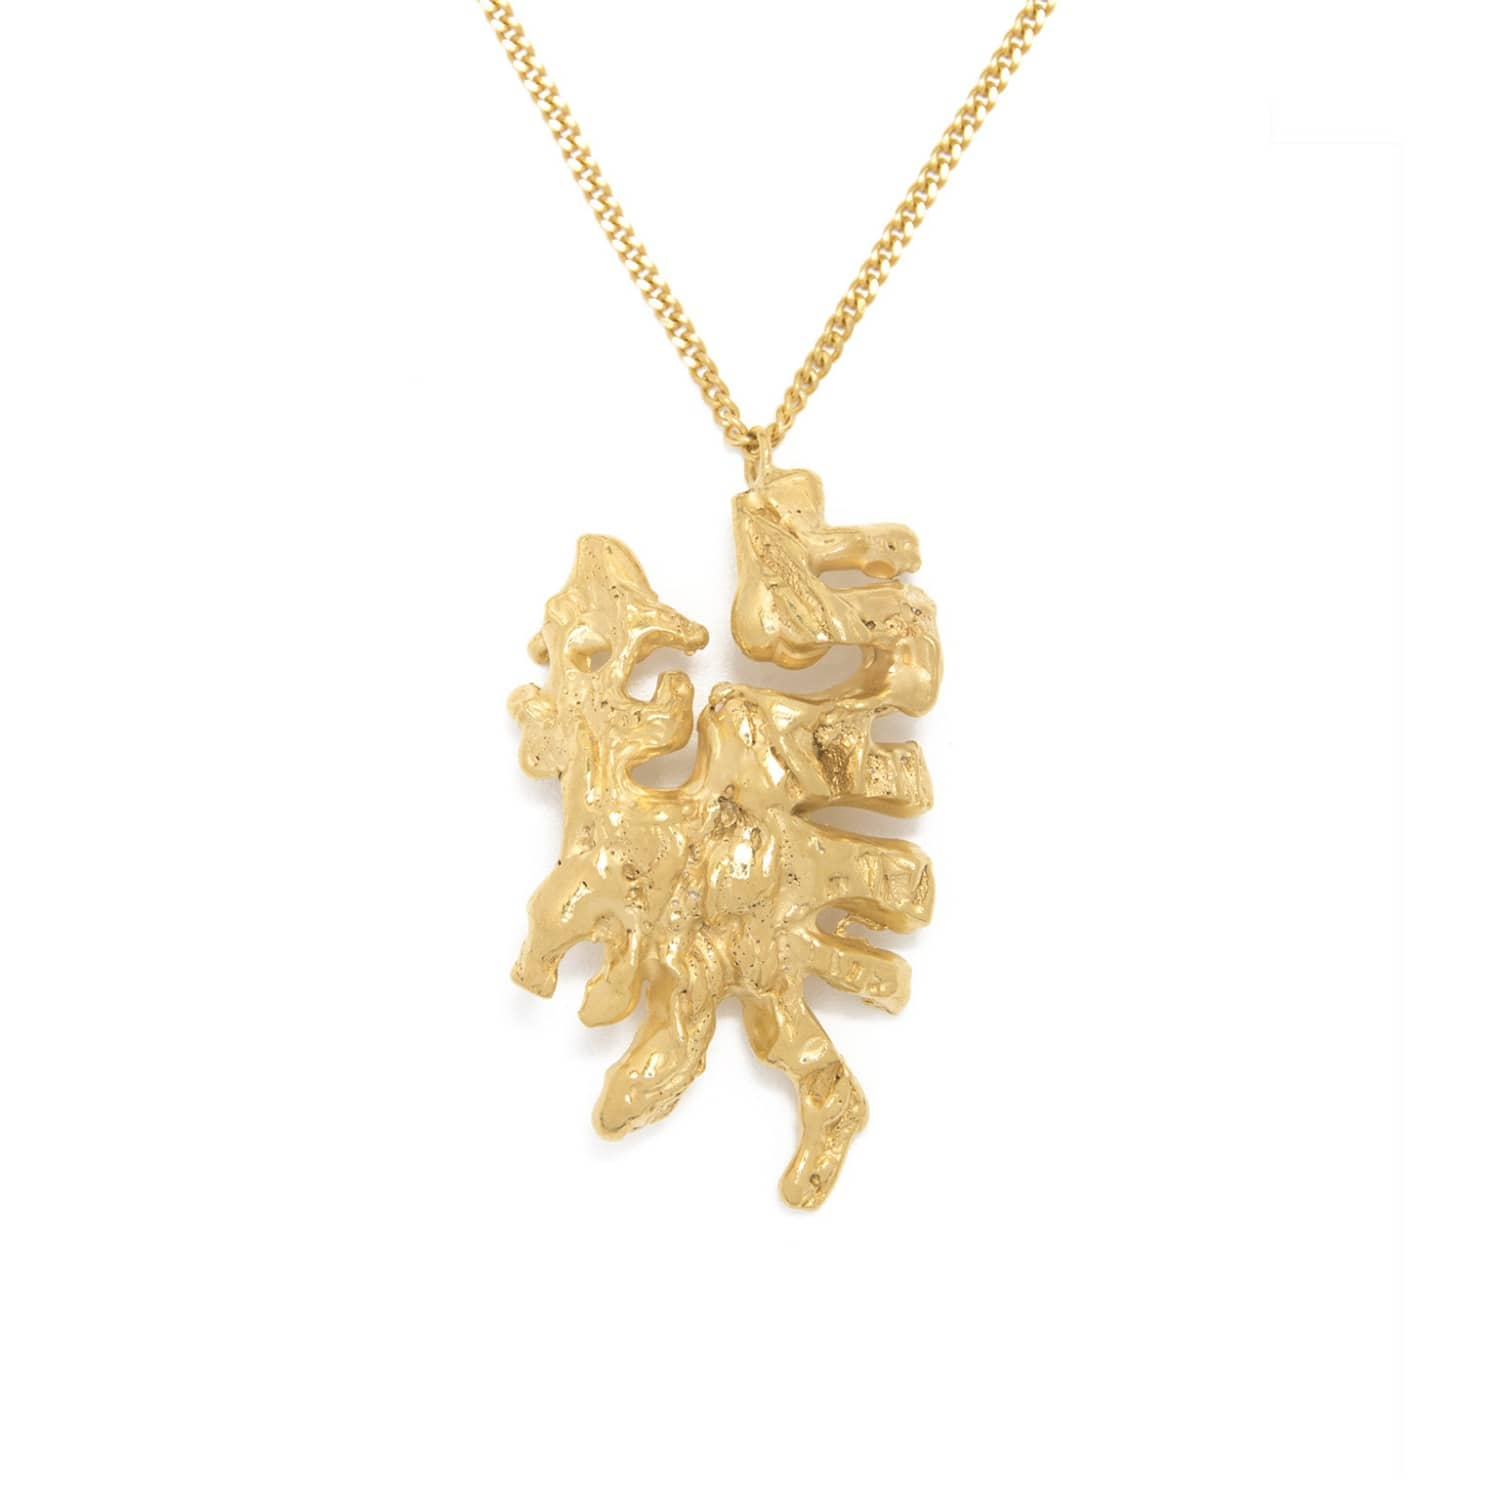 Chinese Zodiac Dragon Horoscope Gold Pendant Necklace by Loveness Lee